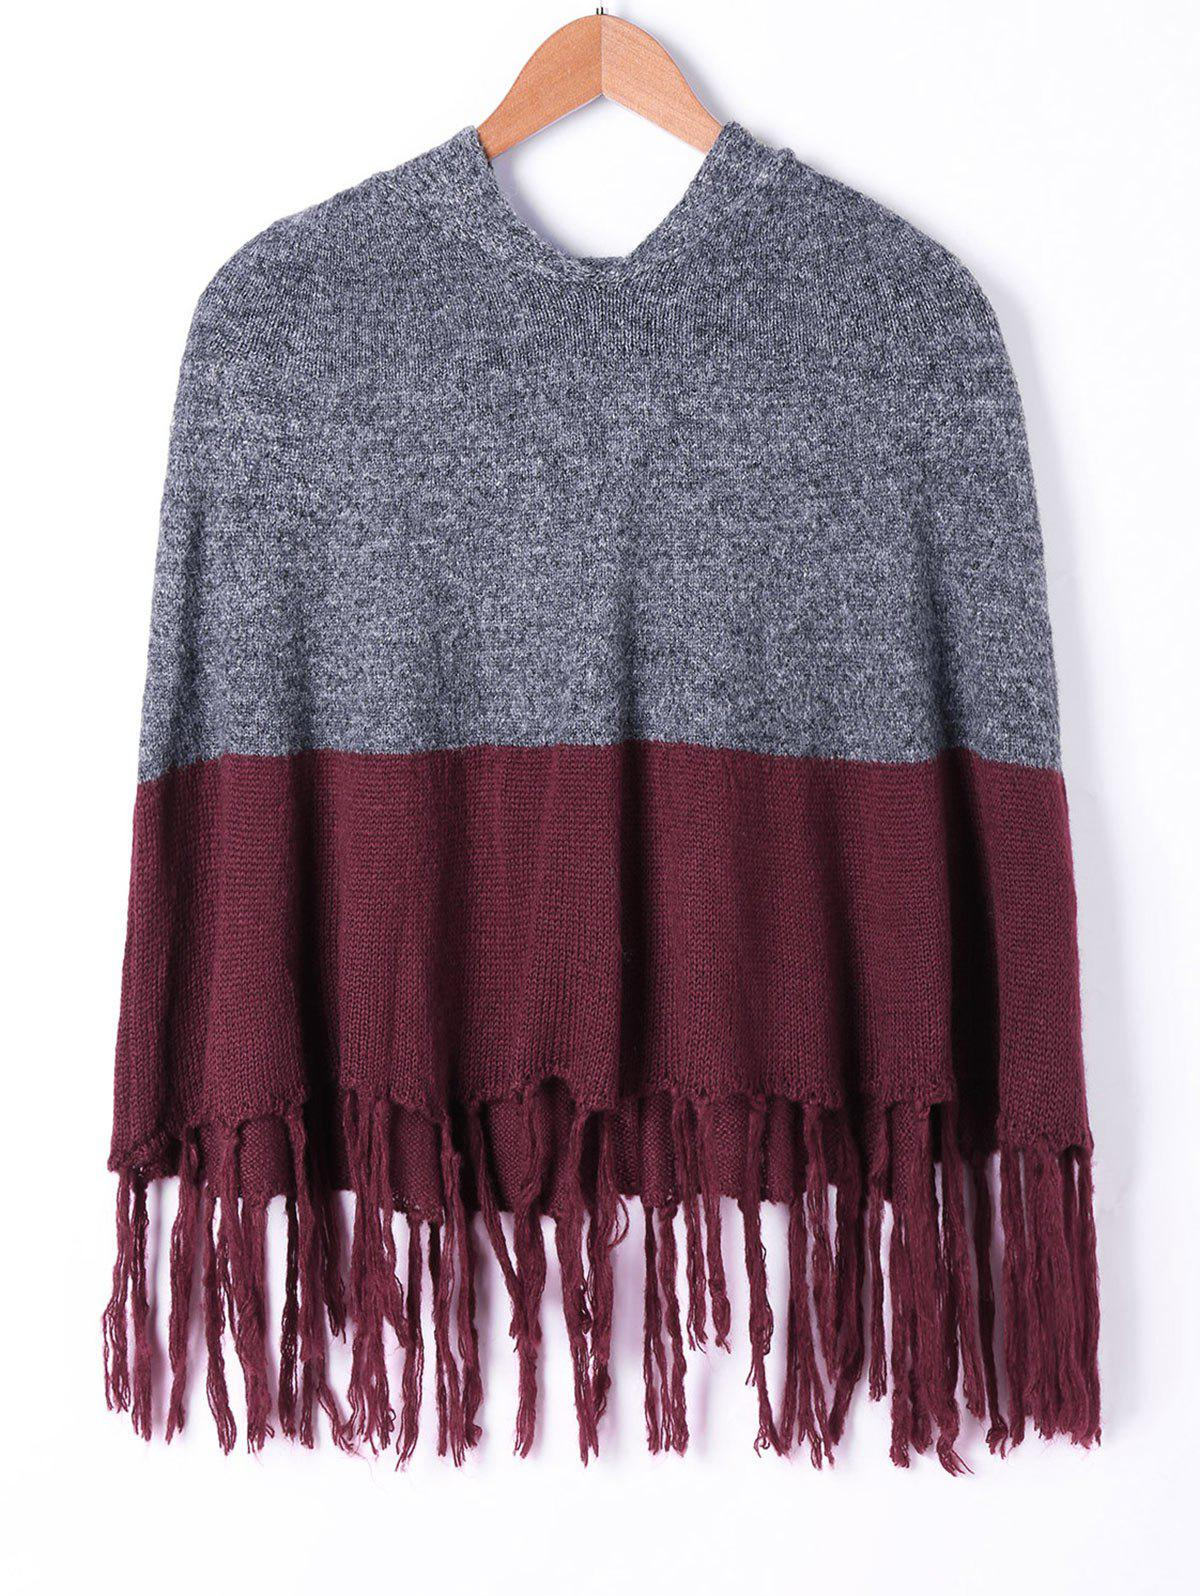 Hooded Tassel Two Tone Knit Cape - COLORMIX M